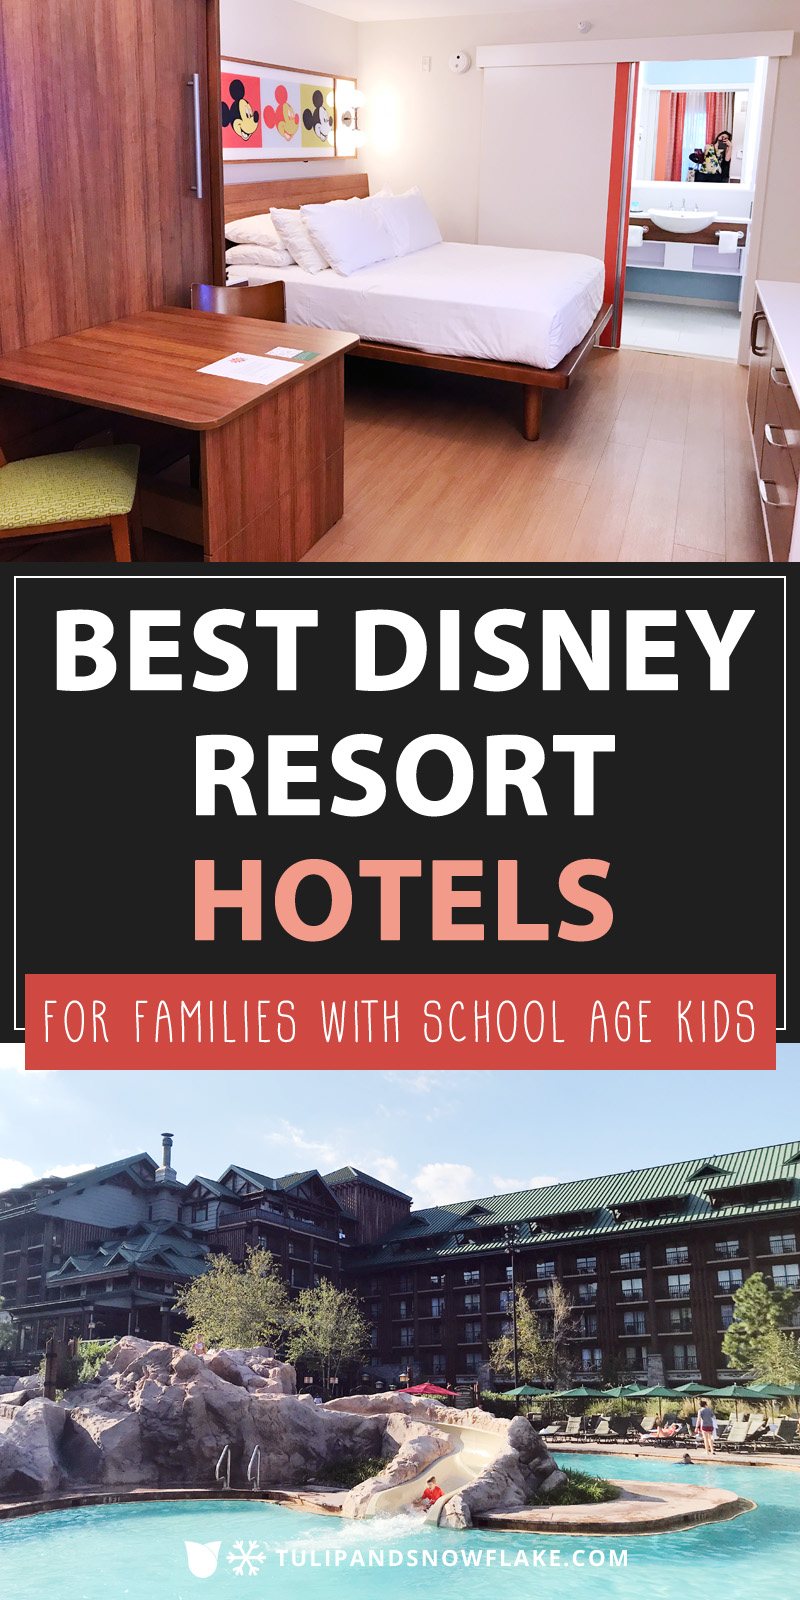 Best Disney Resort Hotels for families with school age kids